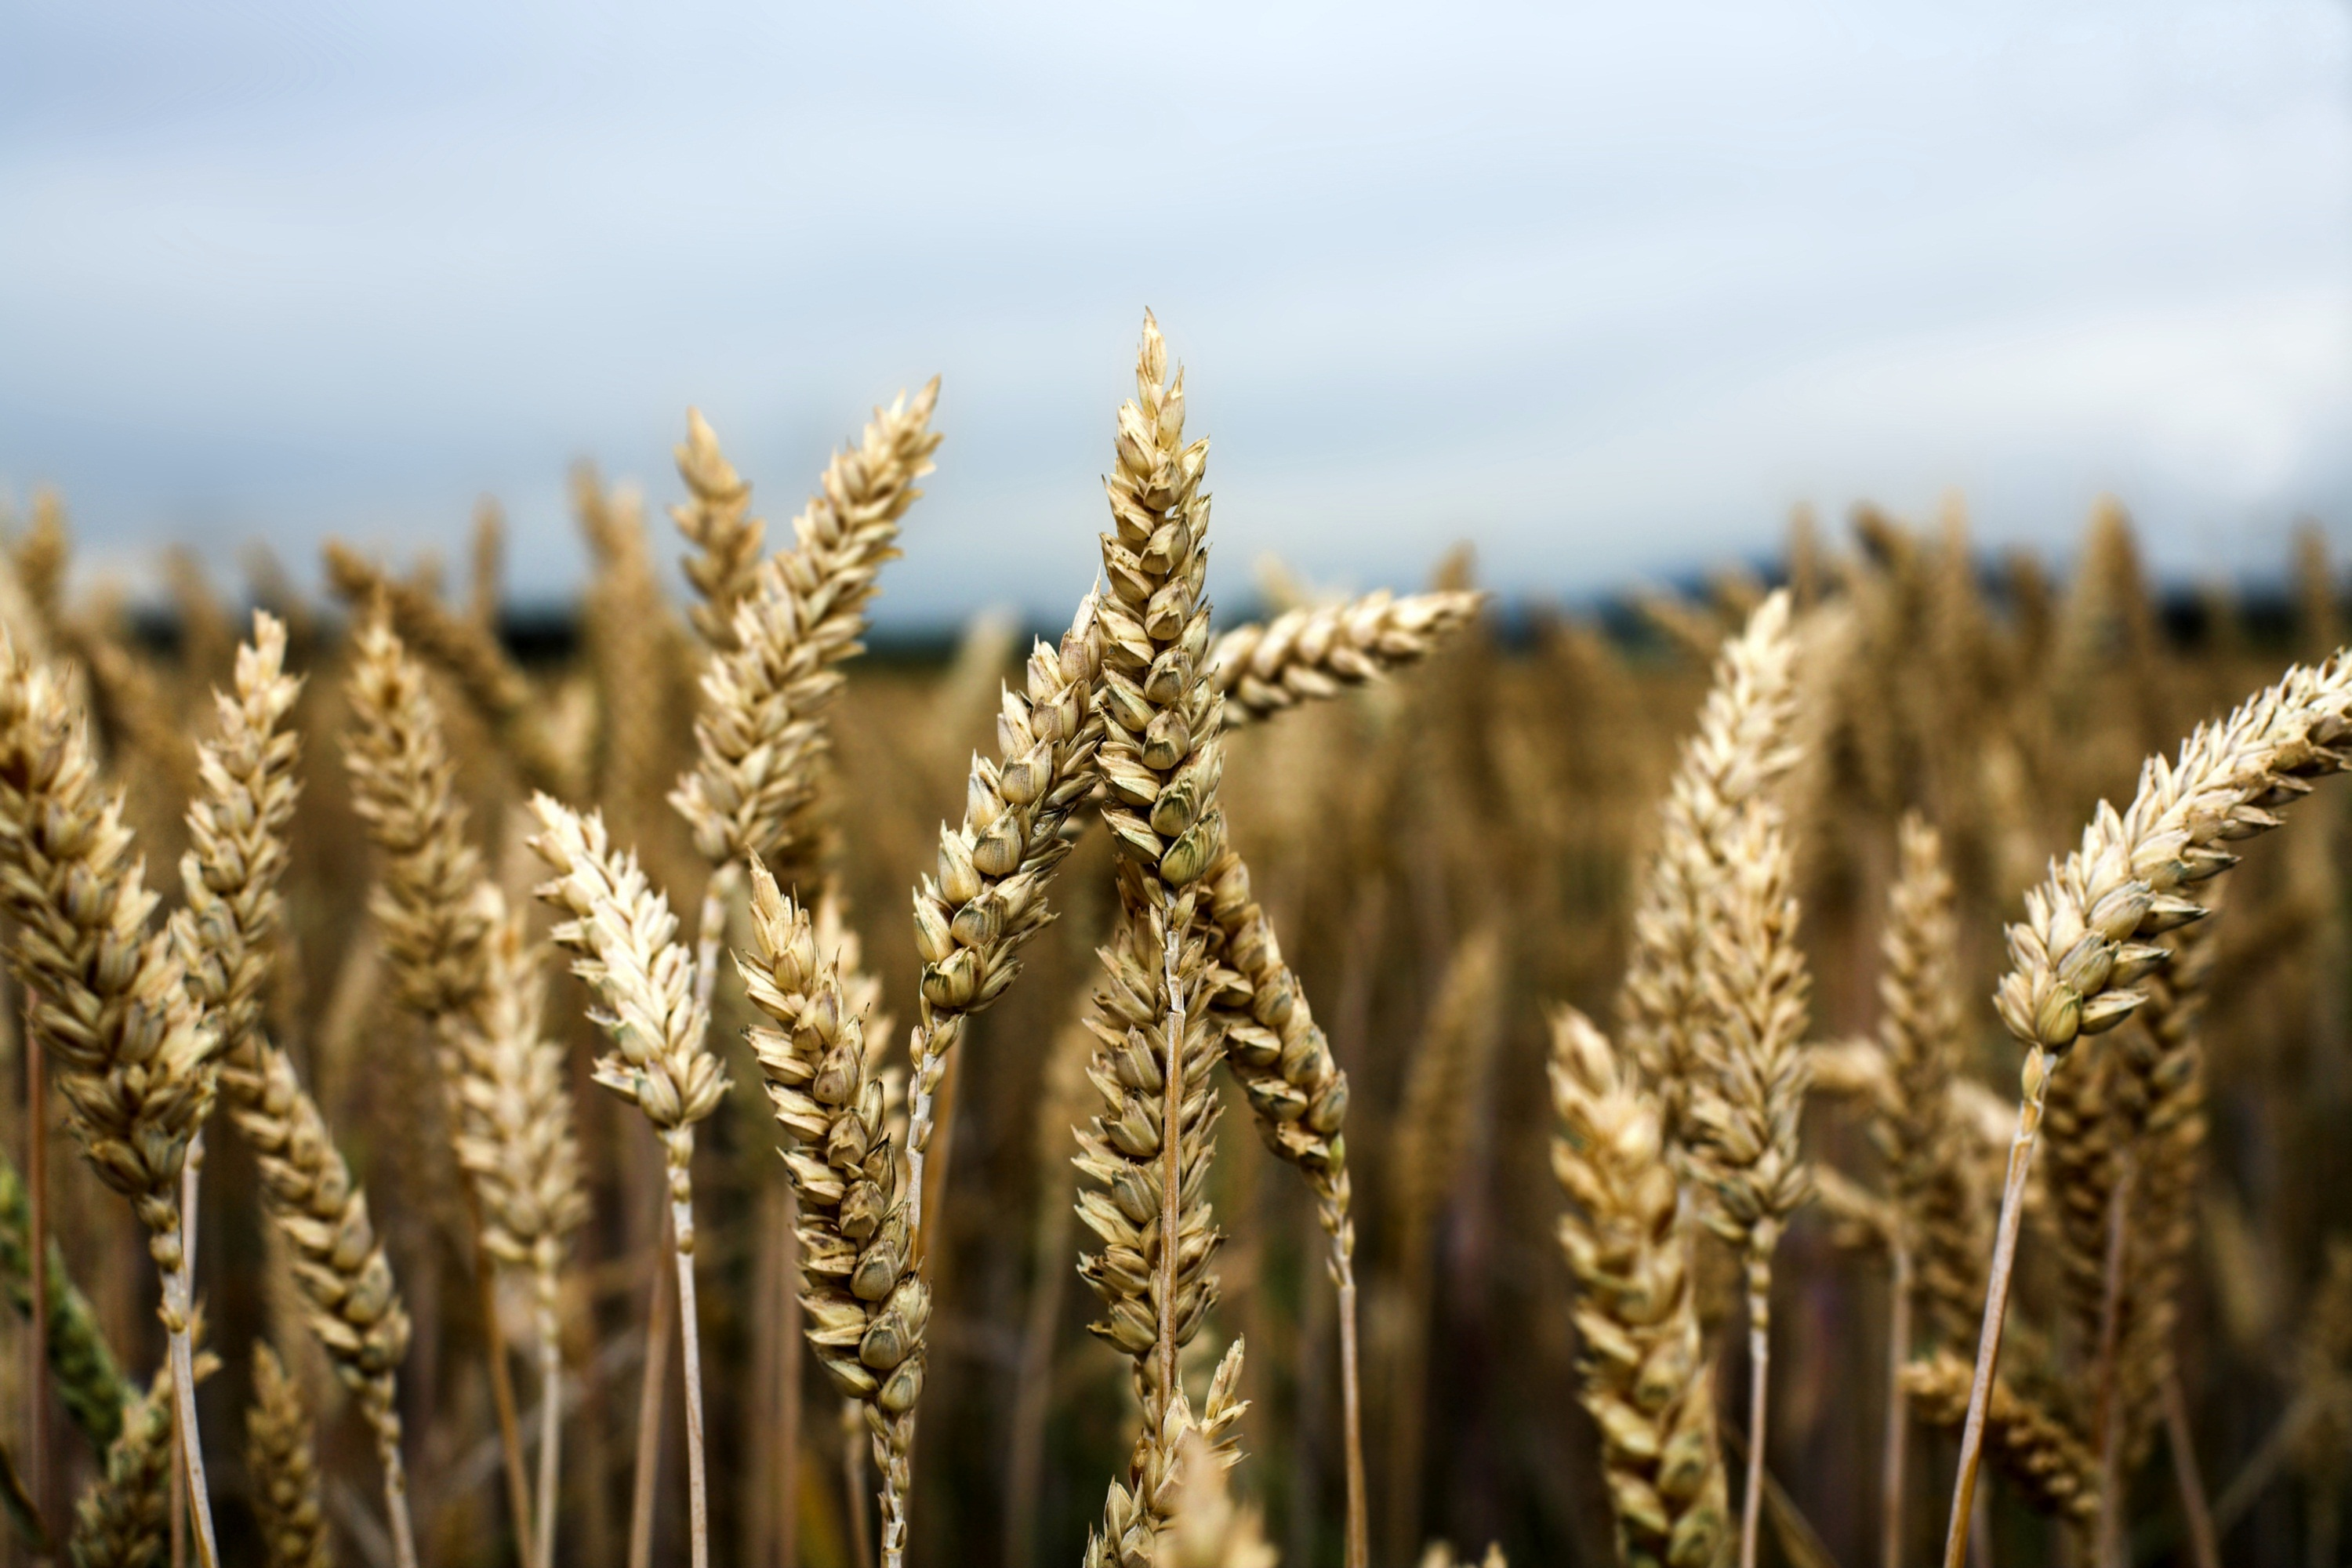 Arrival of high yielding milling wheats capitalises new export opportunities